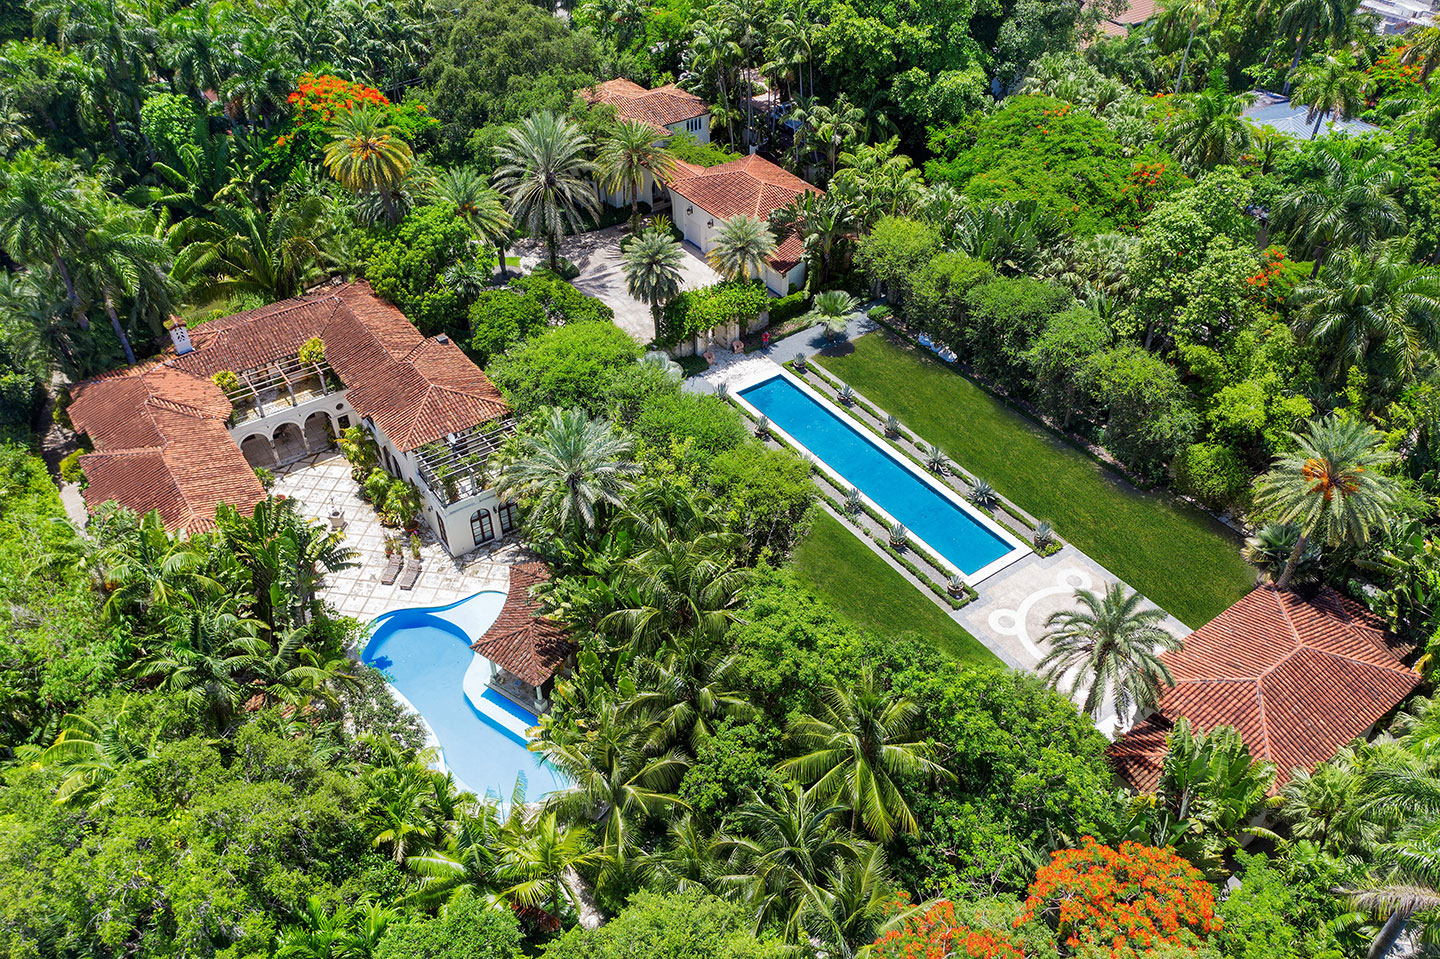 3725 Leafy Way, Coconut Grove, Miami, Florida, USA | Aerial View | Listed by Dennis Carvajal, Real Estate Agent, ONE Sotheby's International Realty | Finest Residences